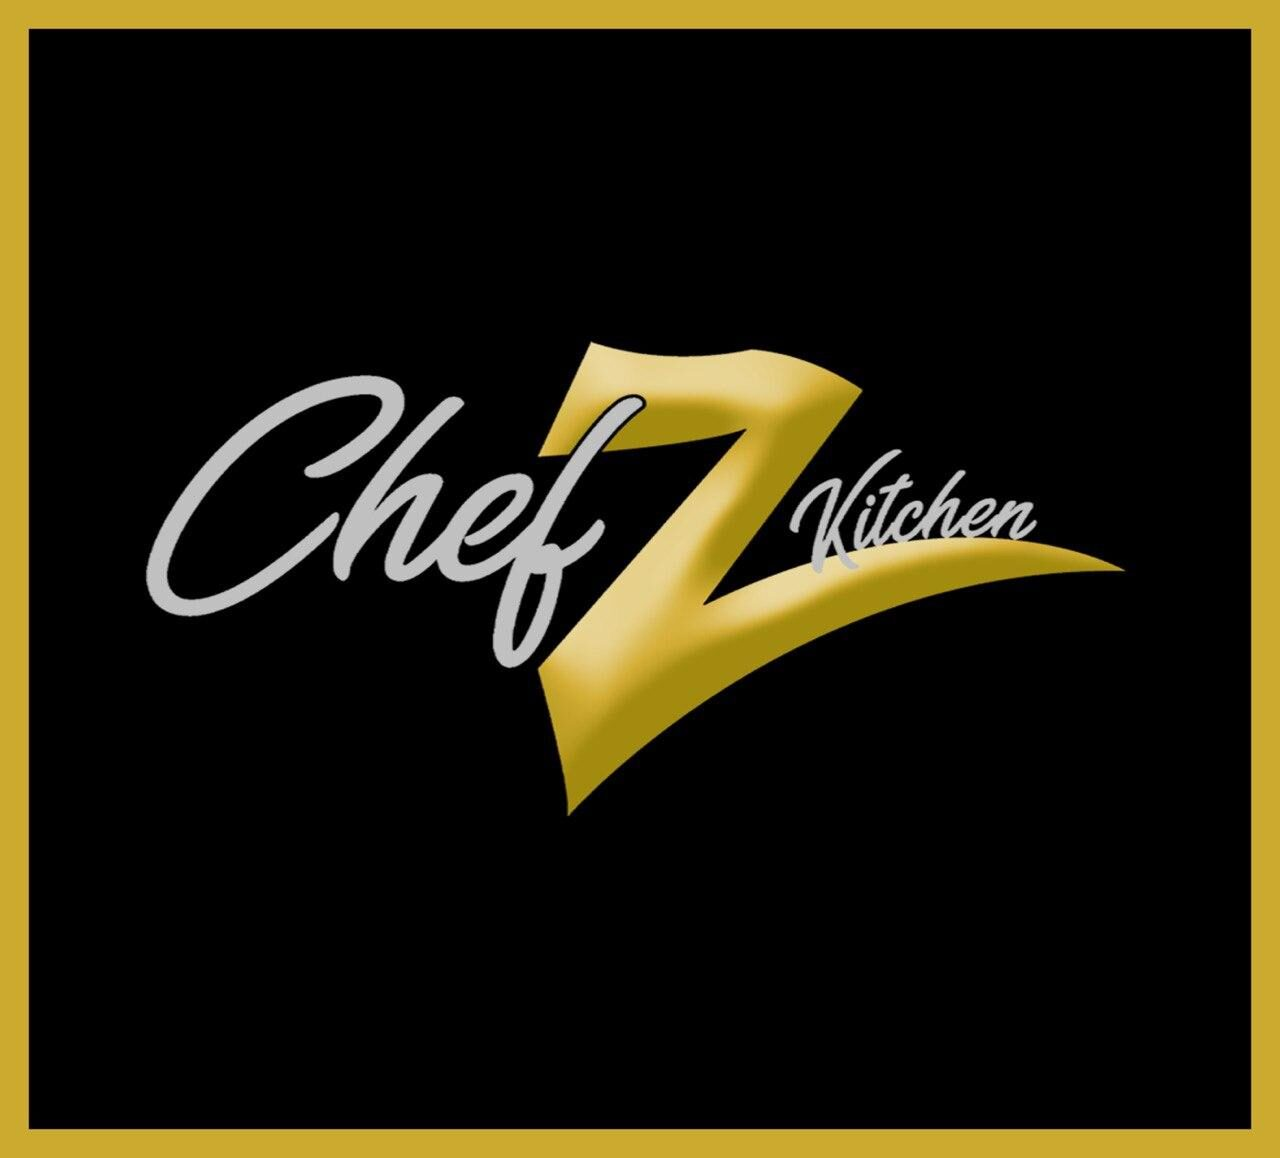 Chefz Kitchen